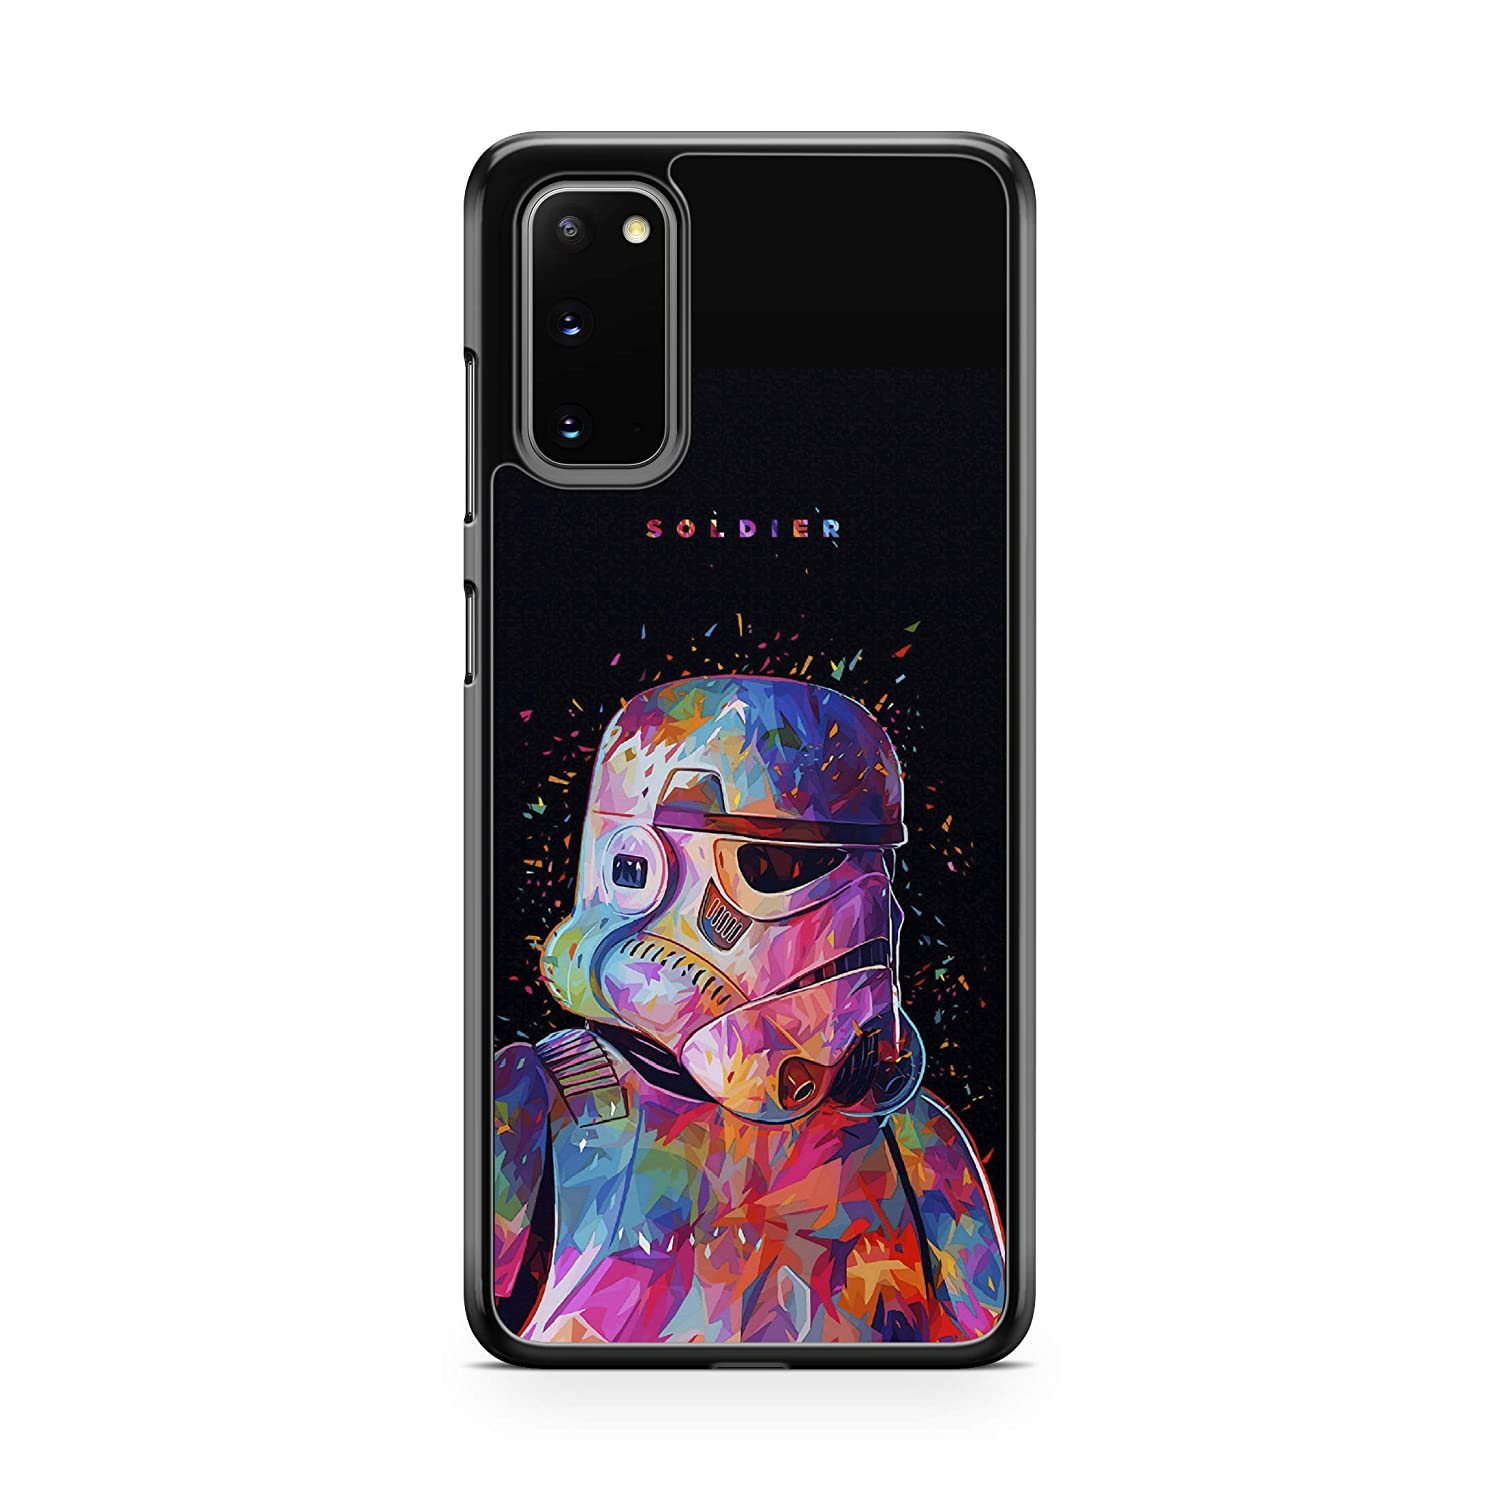 Inspired by Star Wars Soldier Case for Samsung Galaxy A51 A50 A20 Case Galaxy A10e Stormtrooper Phone Cover M37